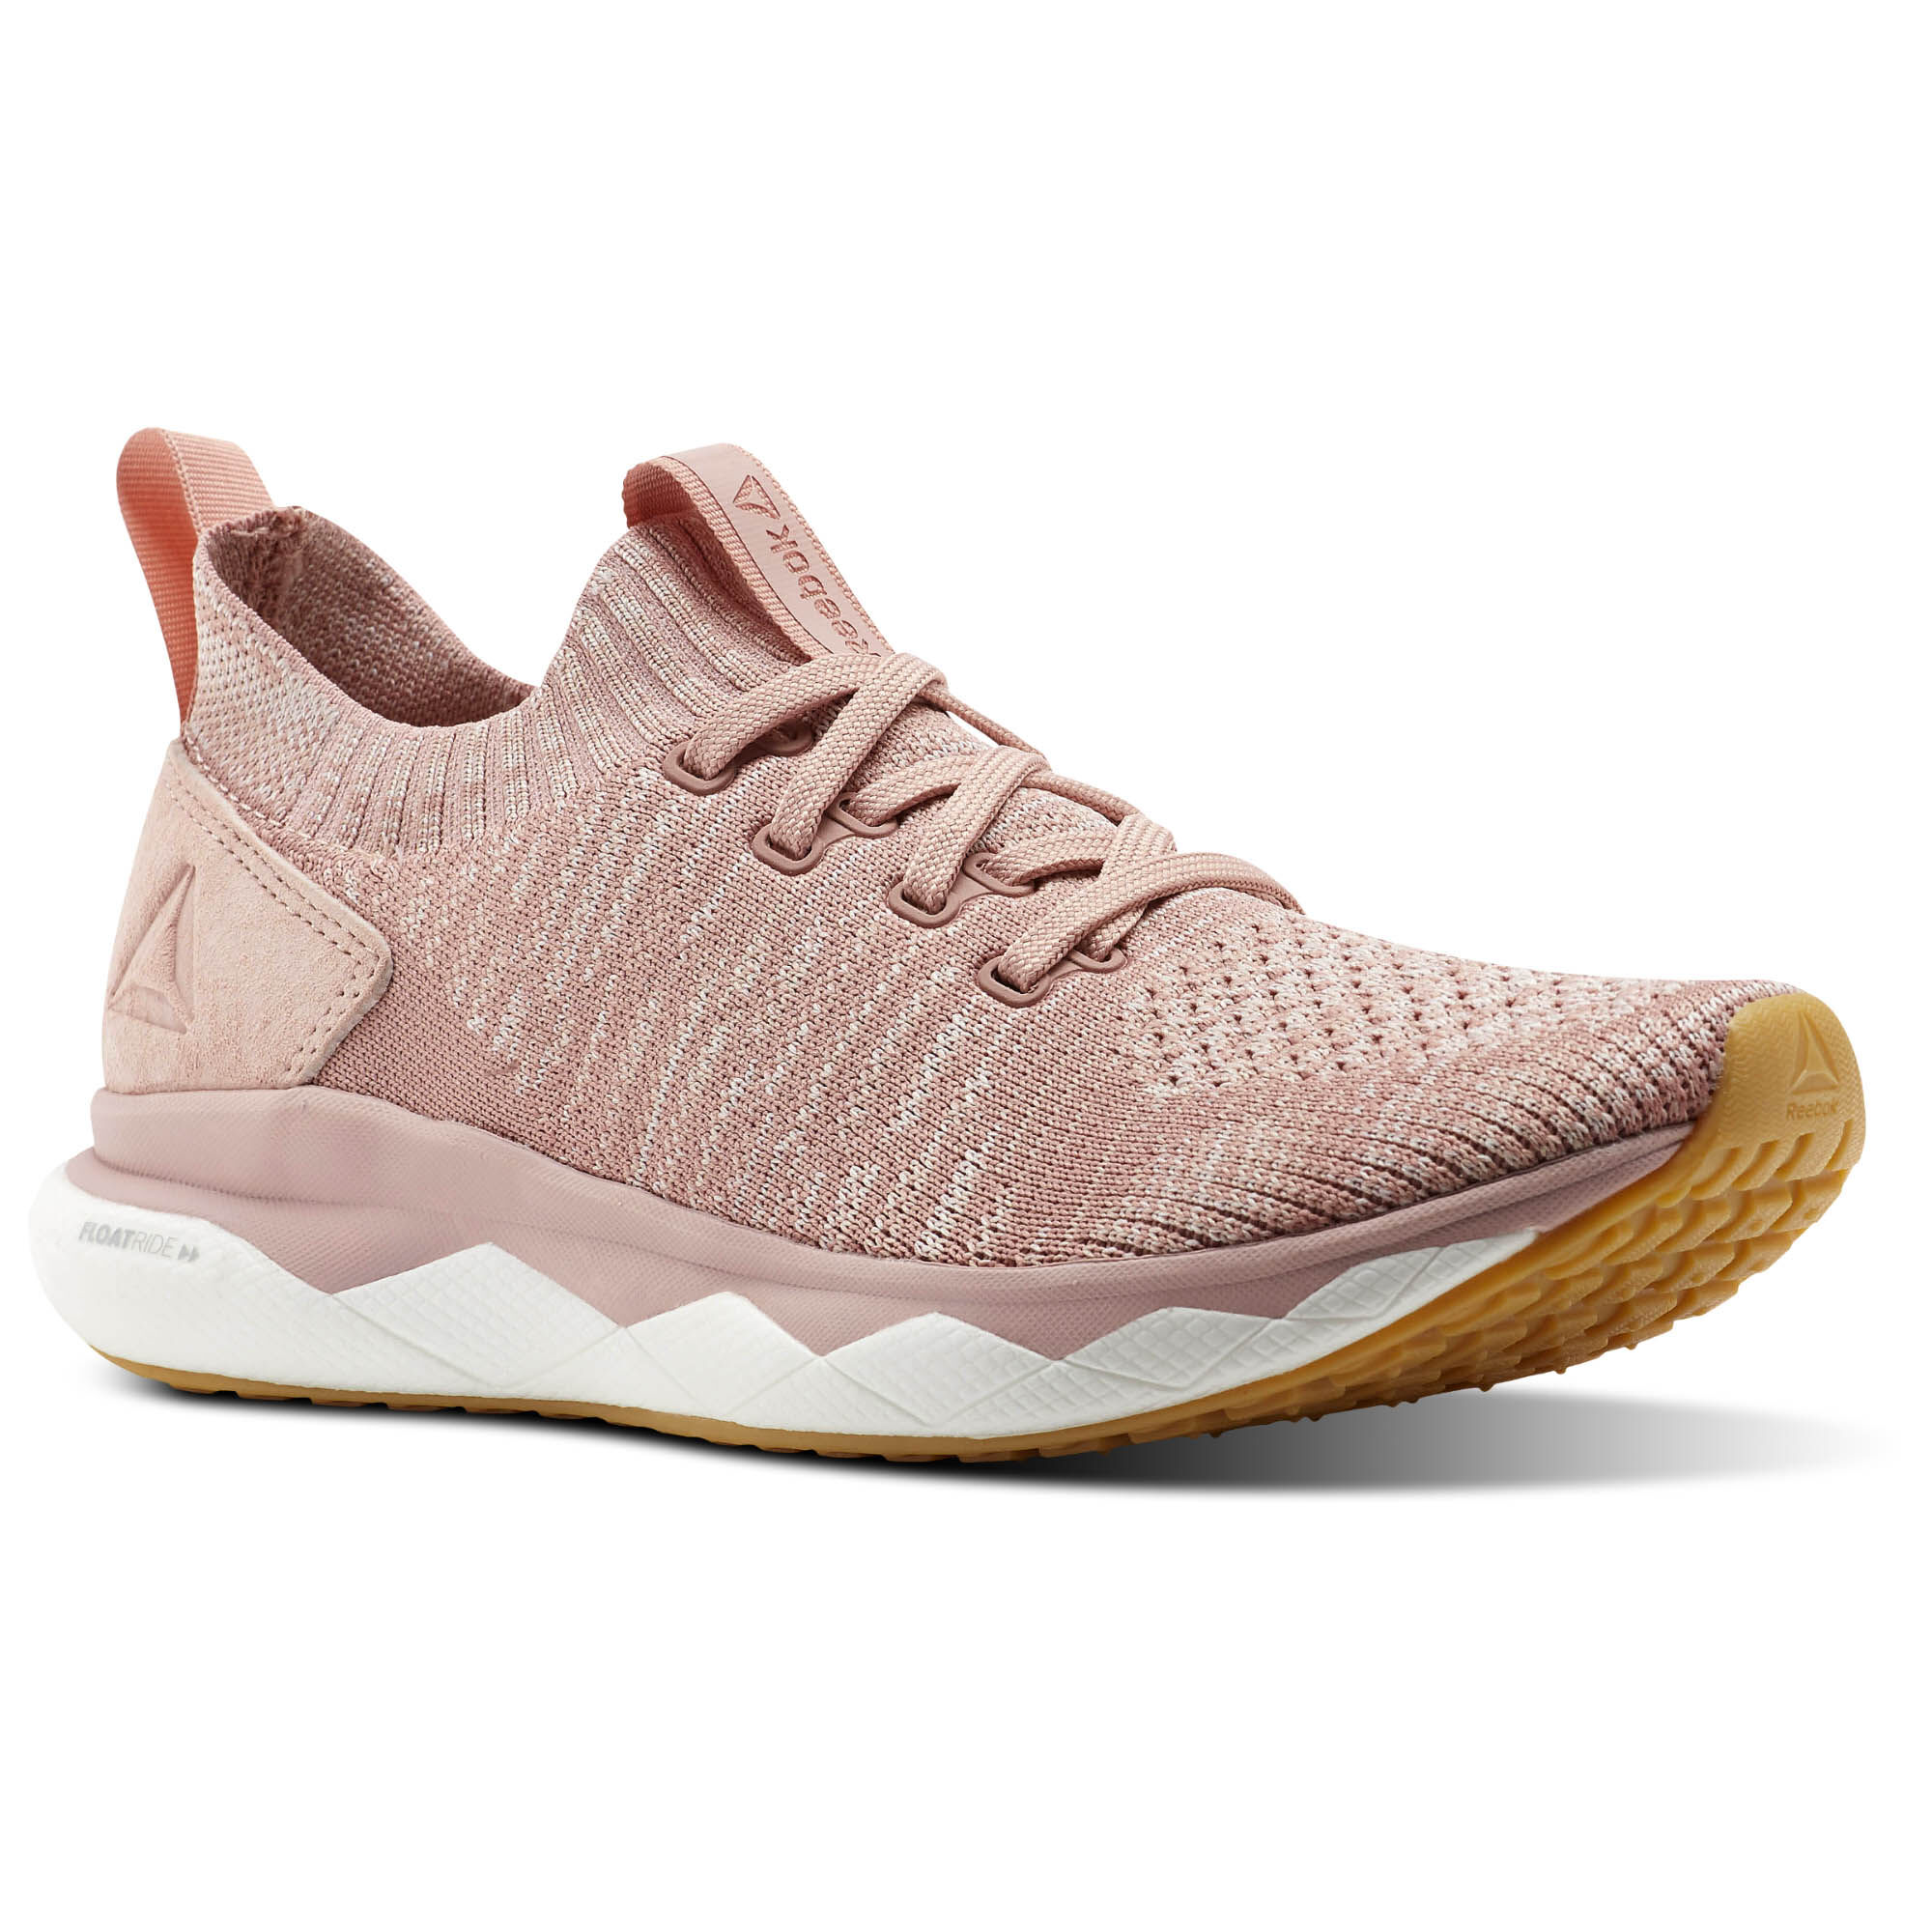 Reebok Floatrise RS Ultraknit sneakers cheap sale best sale Bq9wJyZk7L